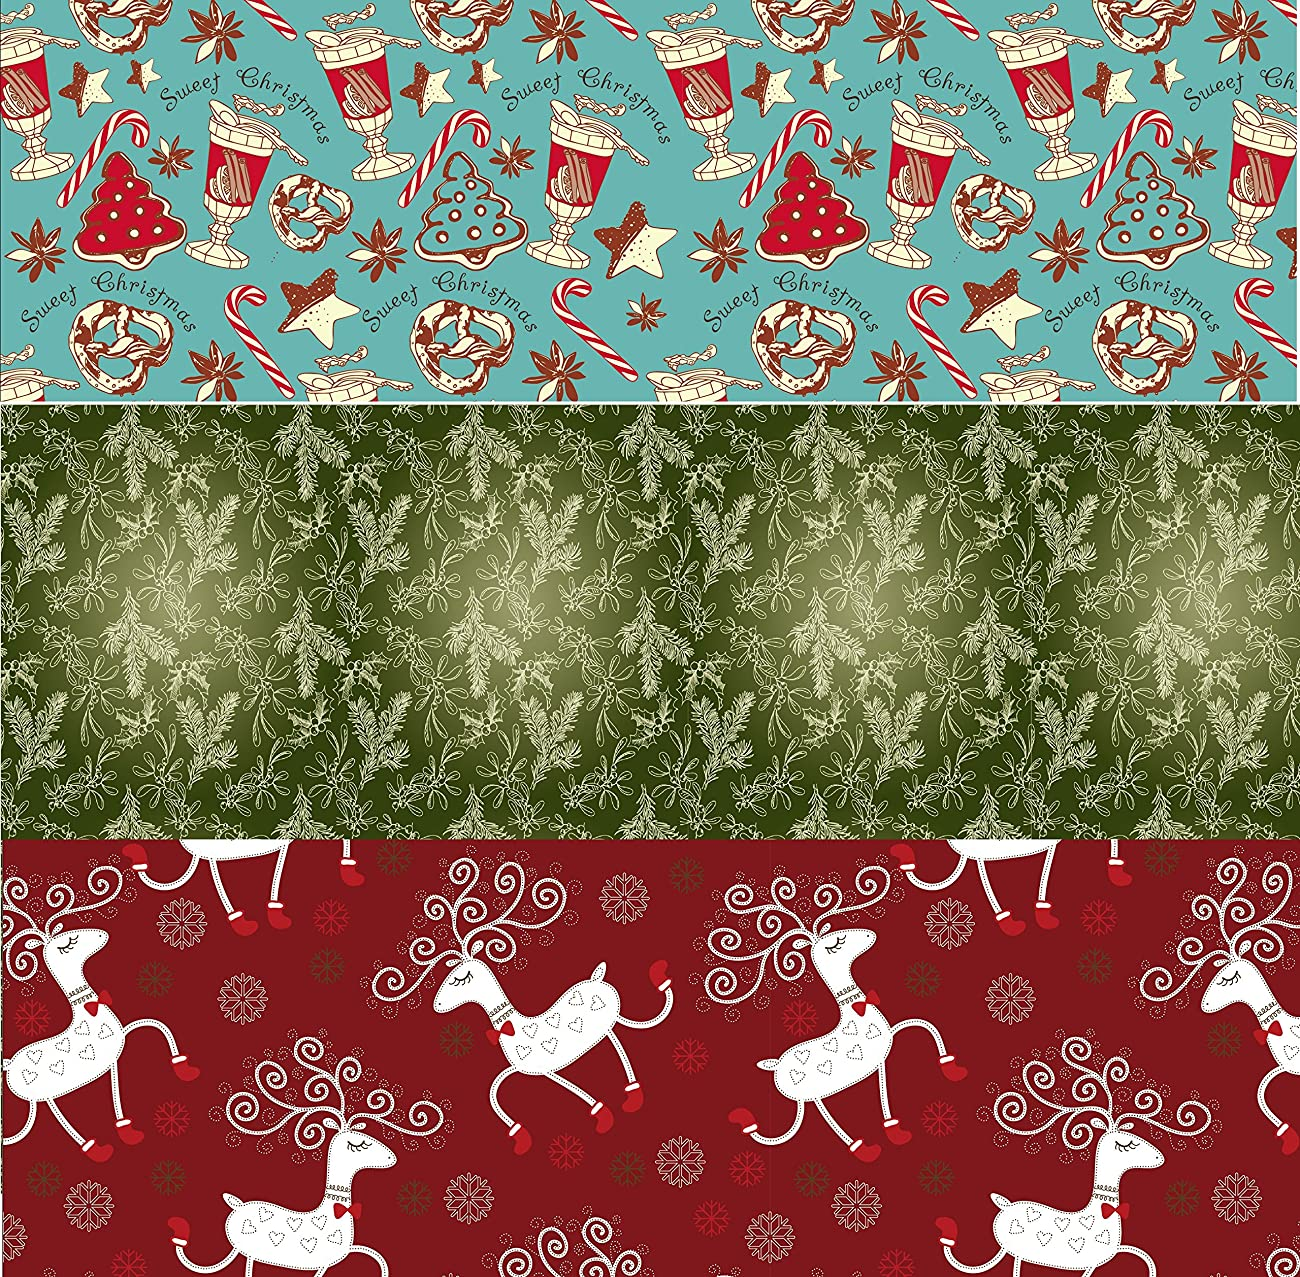 Retro Christmas Kraft Wrapping Paper Sets (Reindeer-Mistletoe-SodaShoppe on Brown Kraft) 0